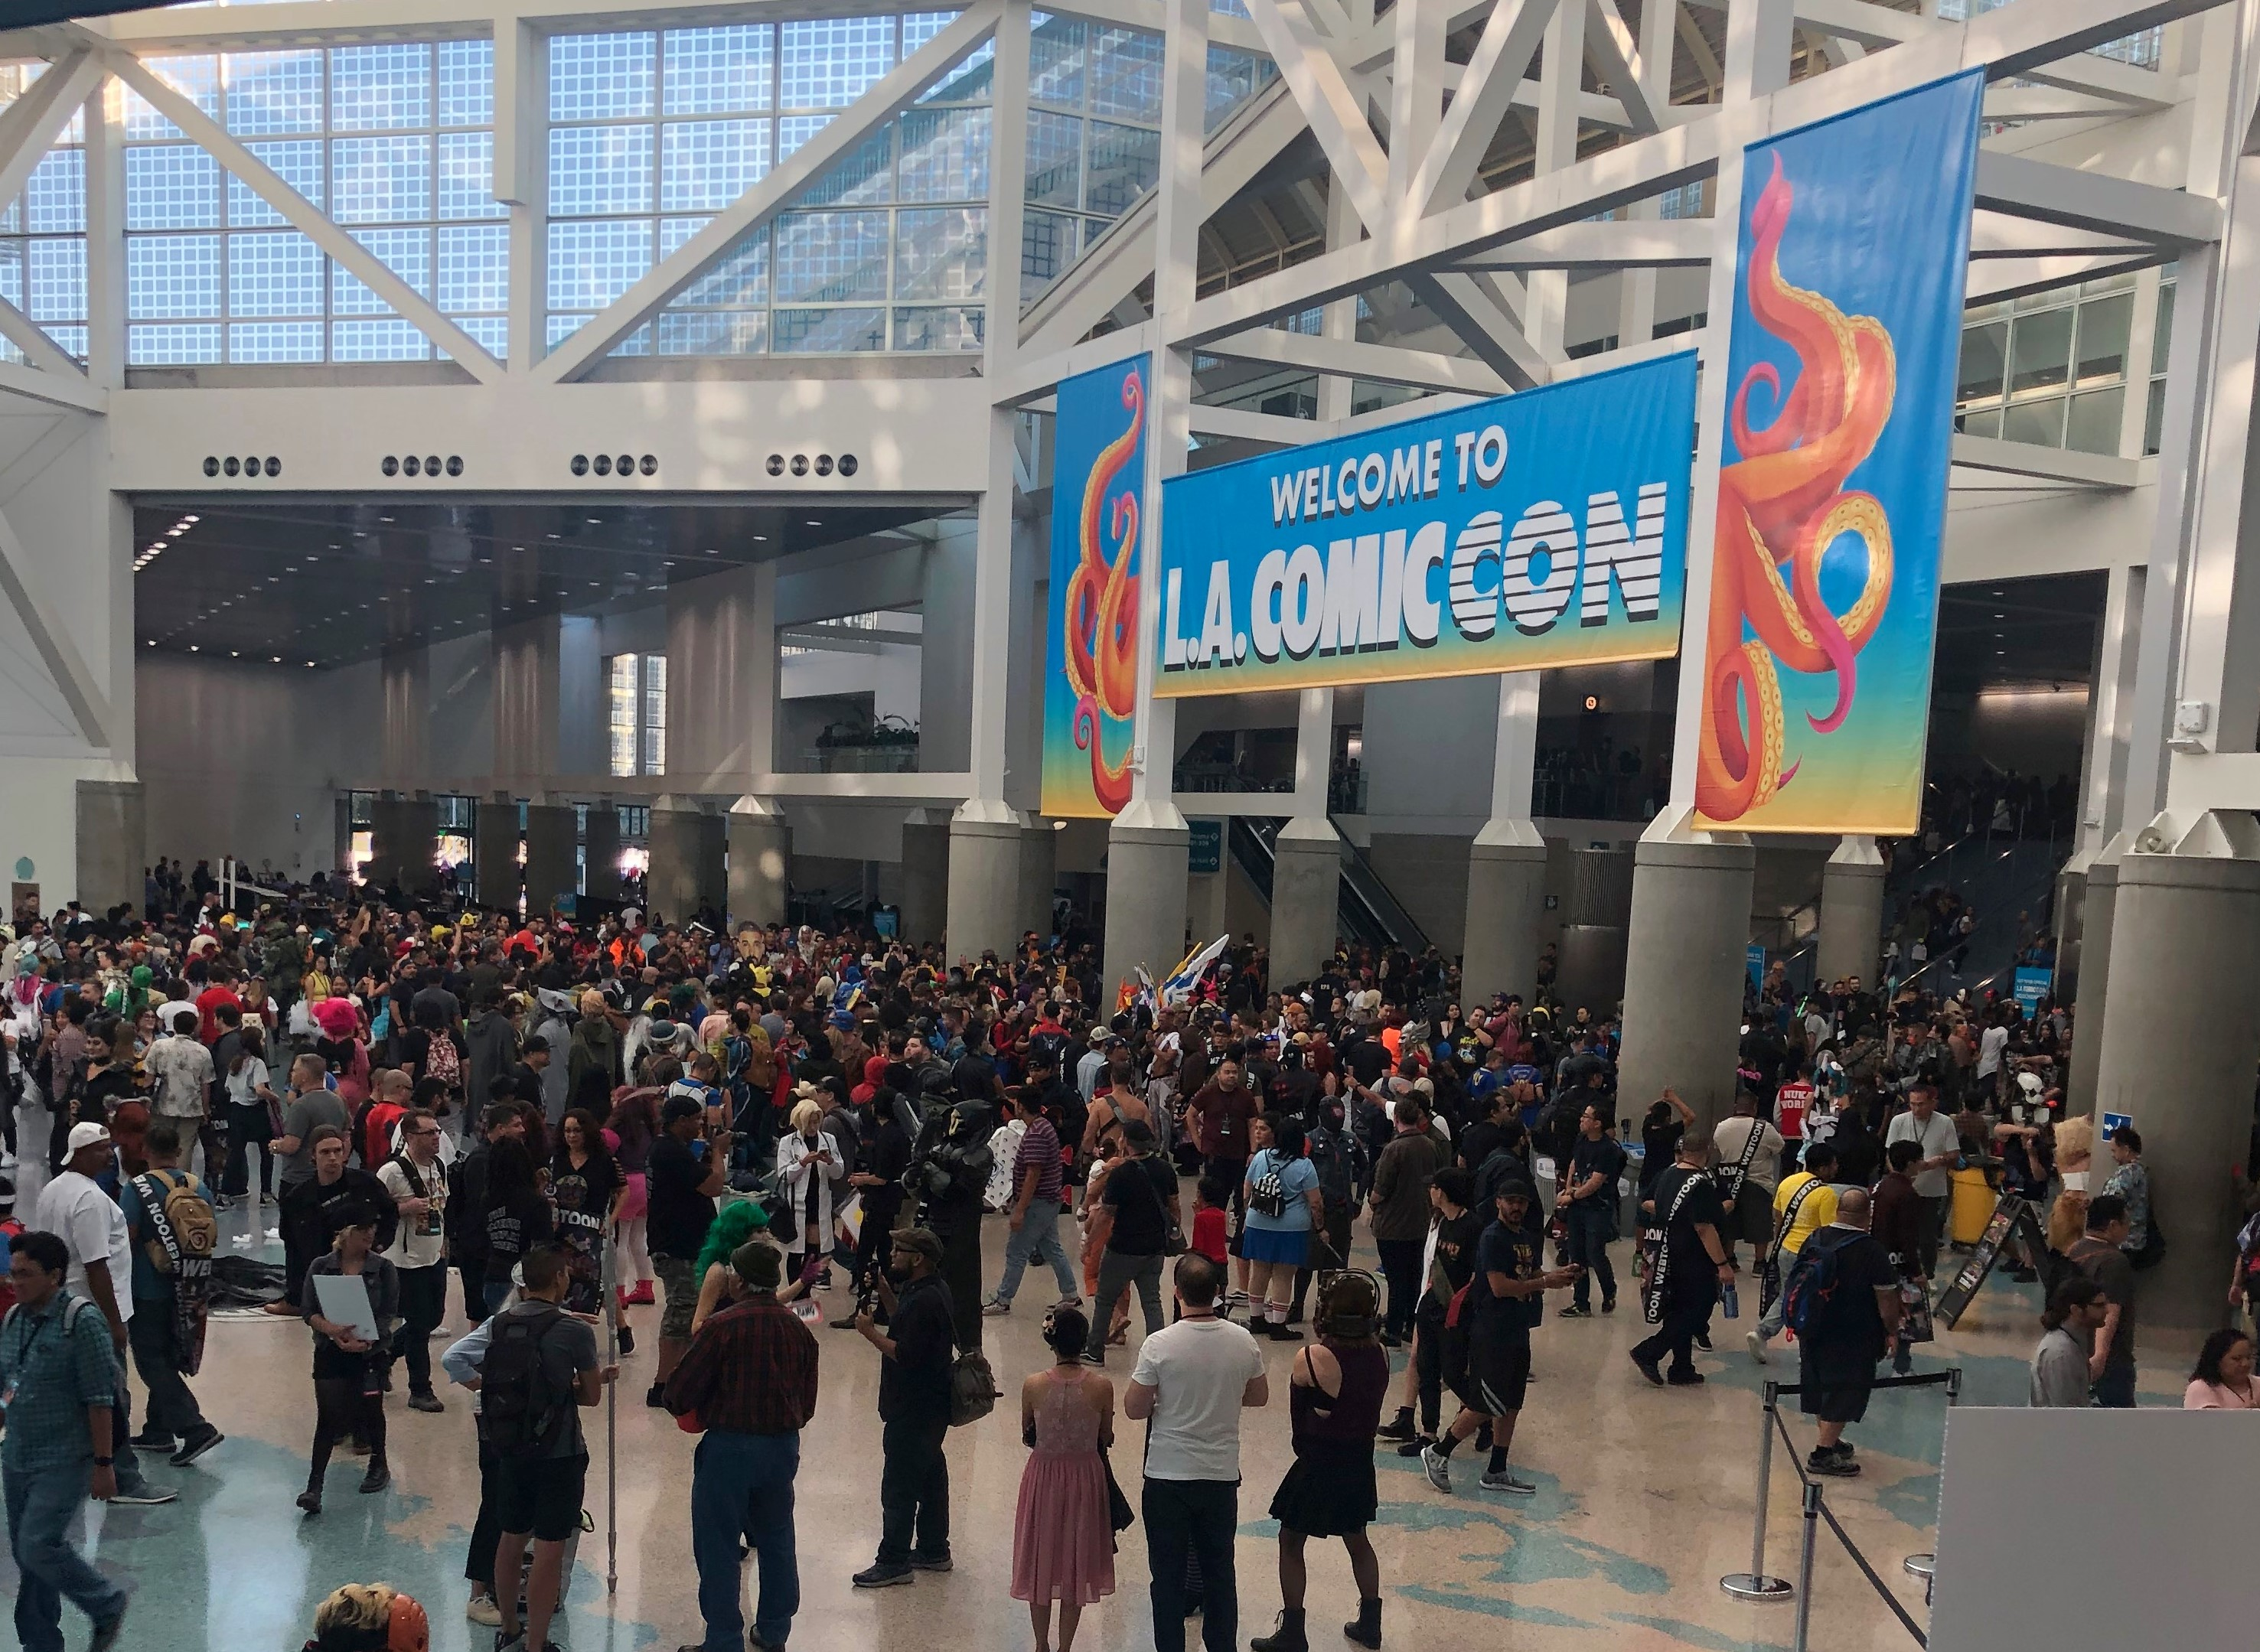 Event Recap: LA COMIC CON 2019